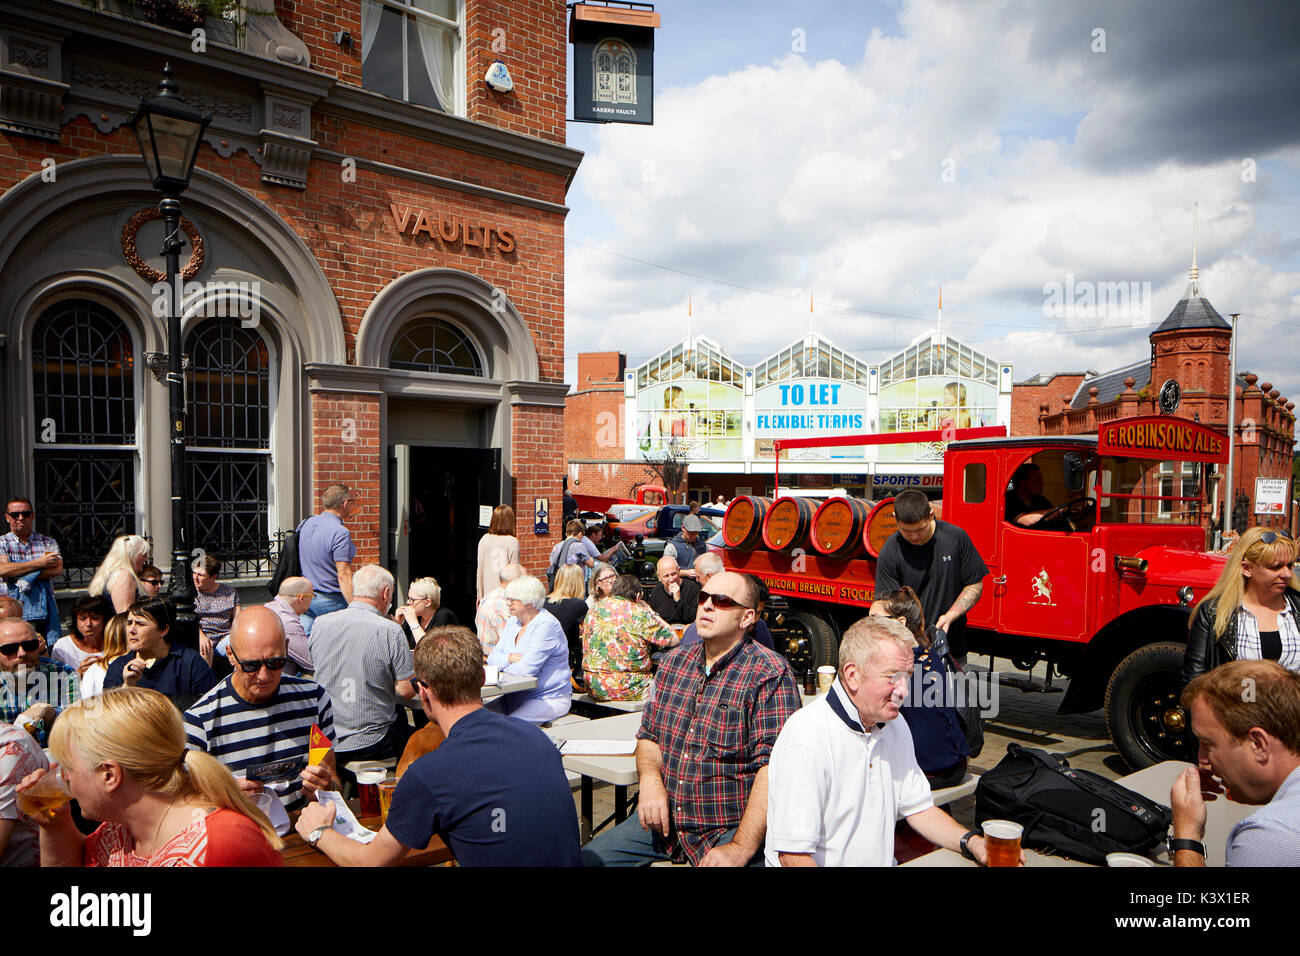 Landmark Stockport Town Centre Cheshire in gtr Manchester St Historic Robinsons Brewery Bakers Vault on the Market Brow with vintage car show - Stock Image